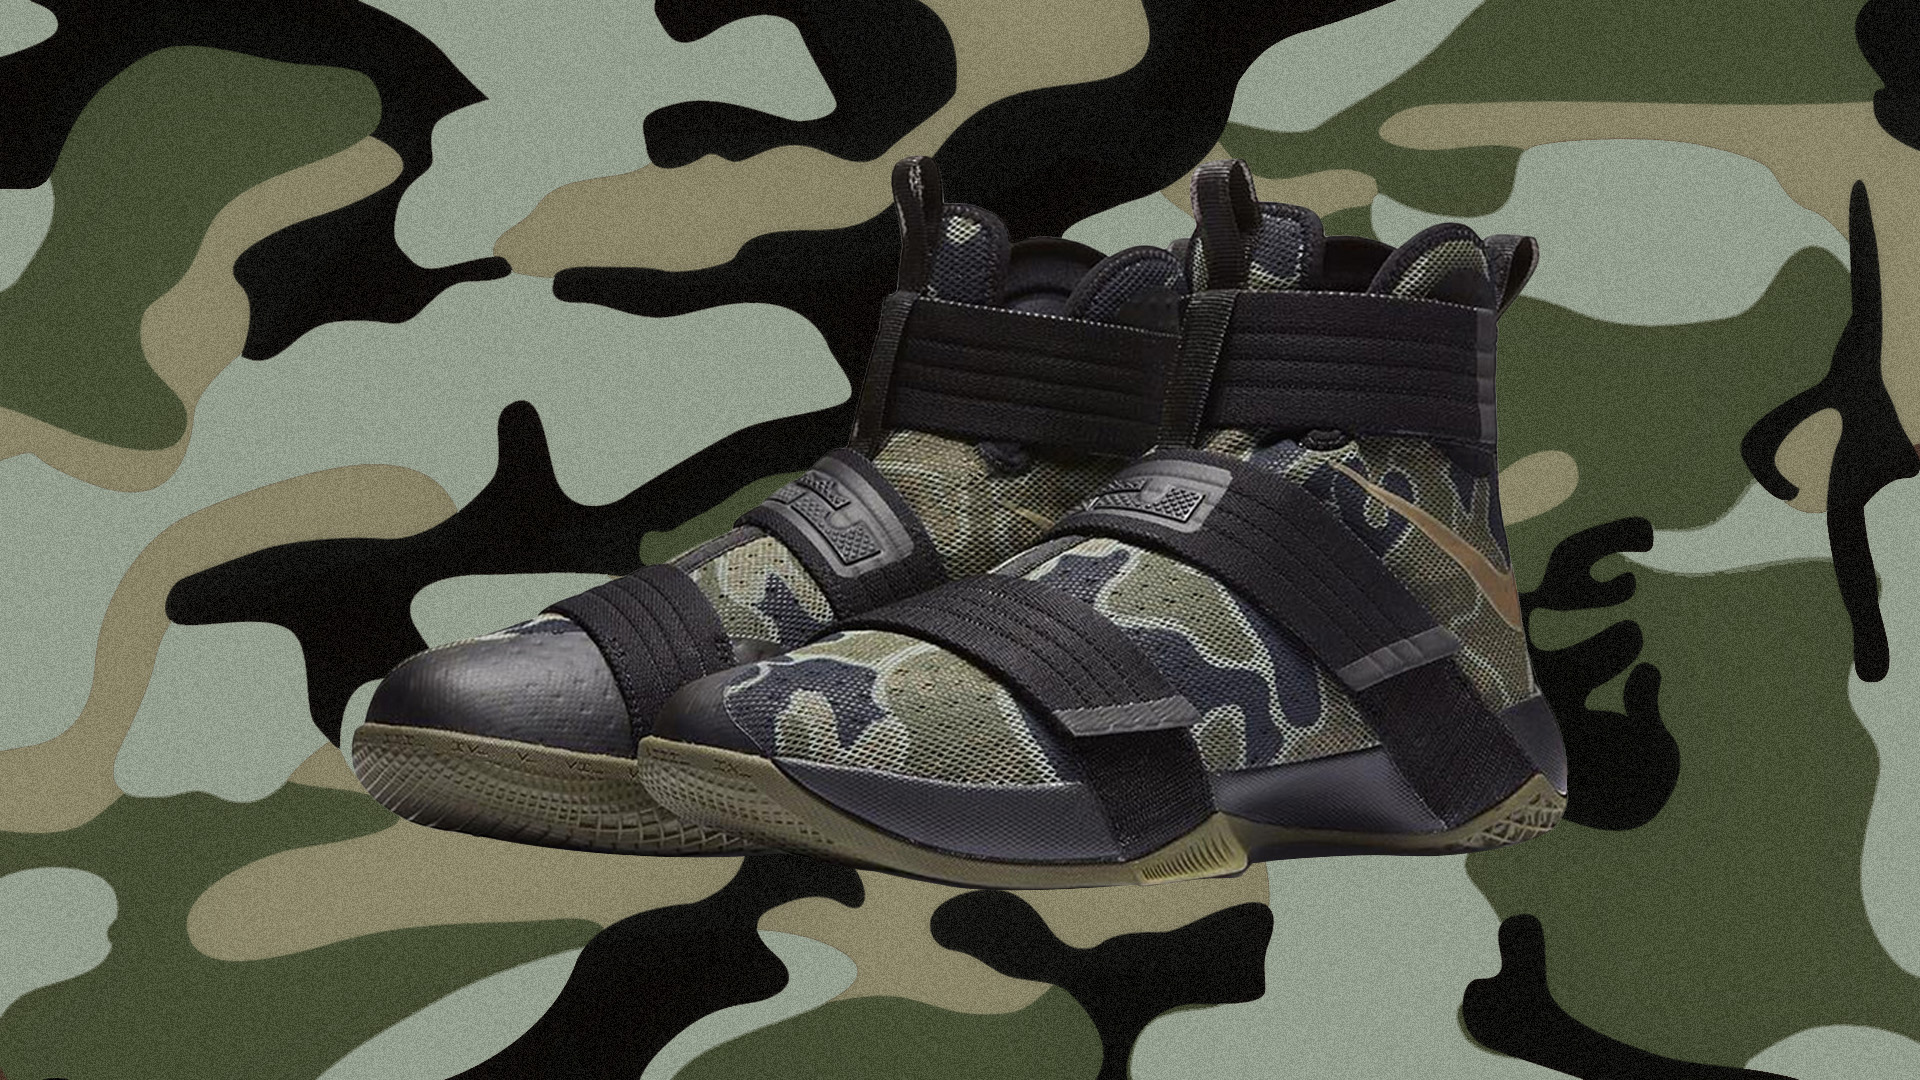 new styles 4e471 78003 The Nike LeBron Soldier 10 SFG 'Camo' is Available Now ...